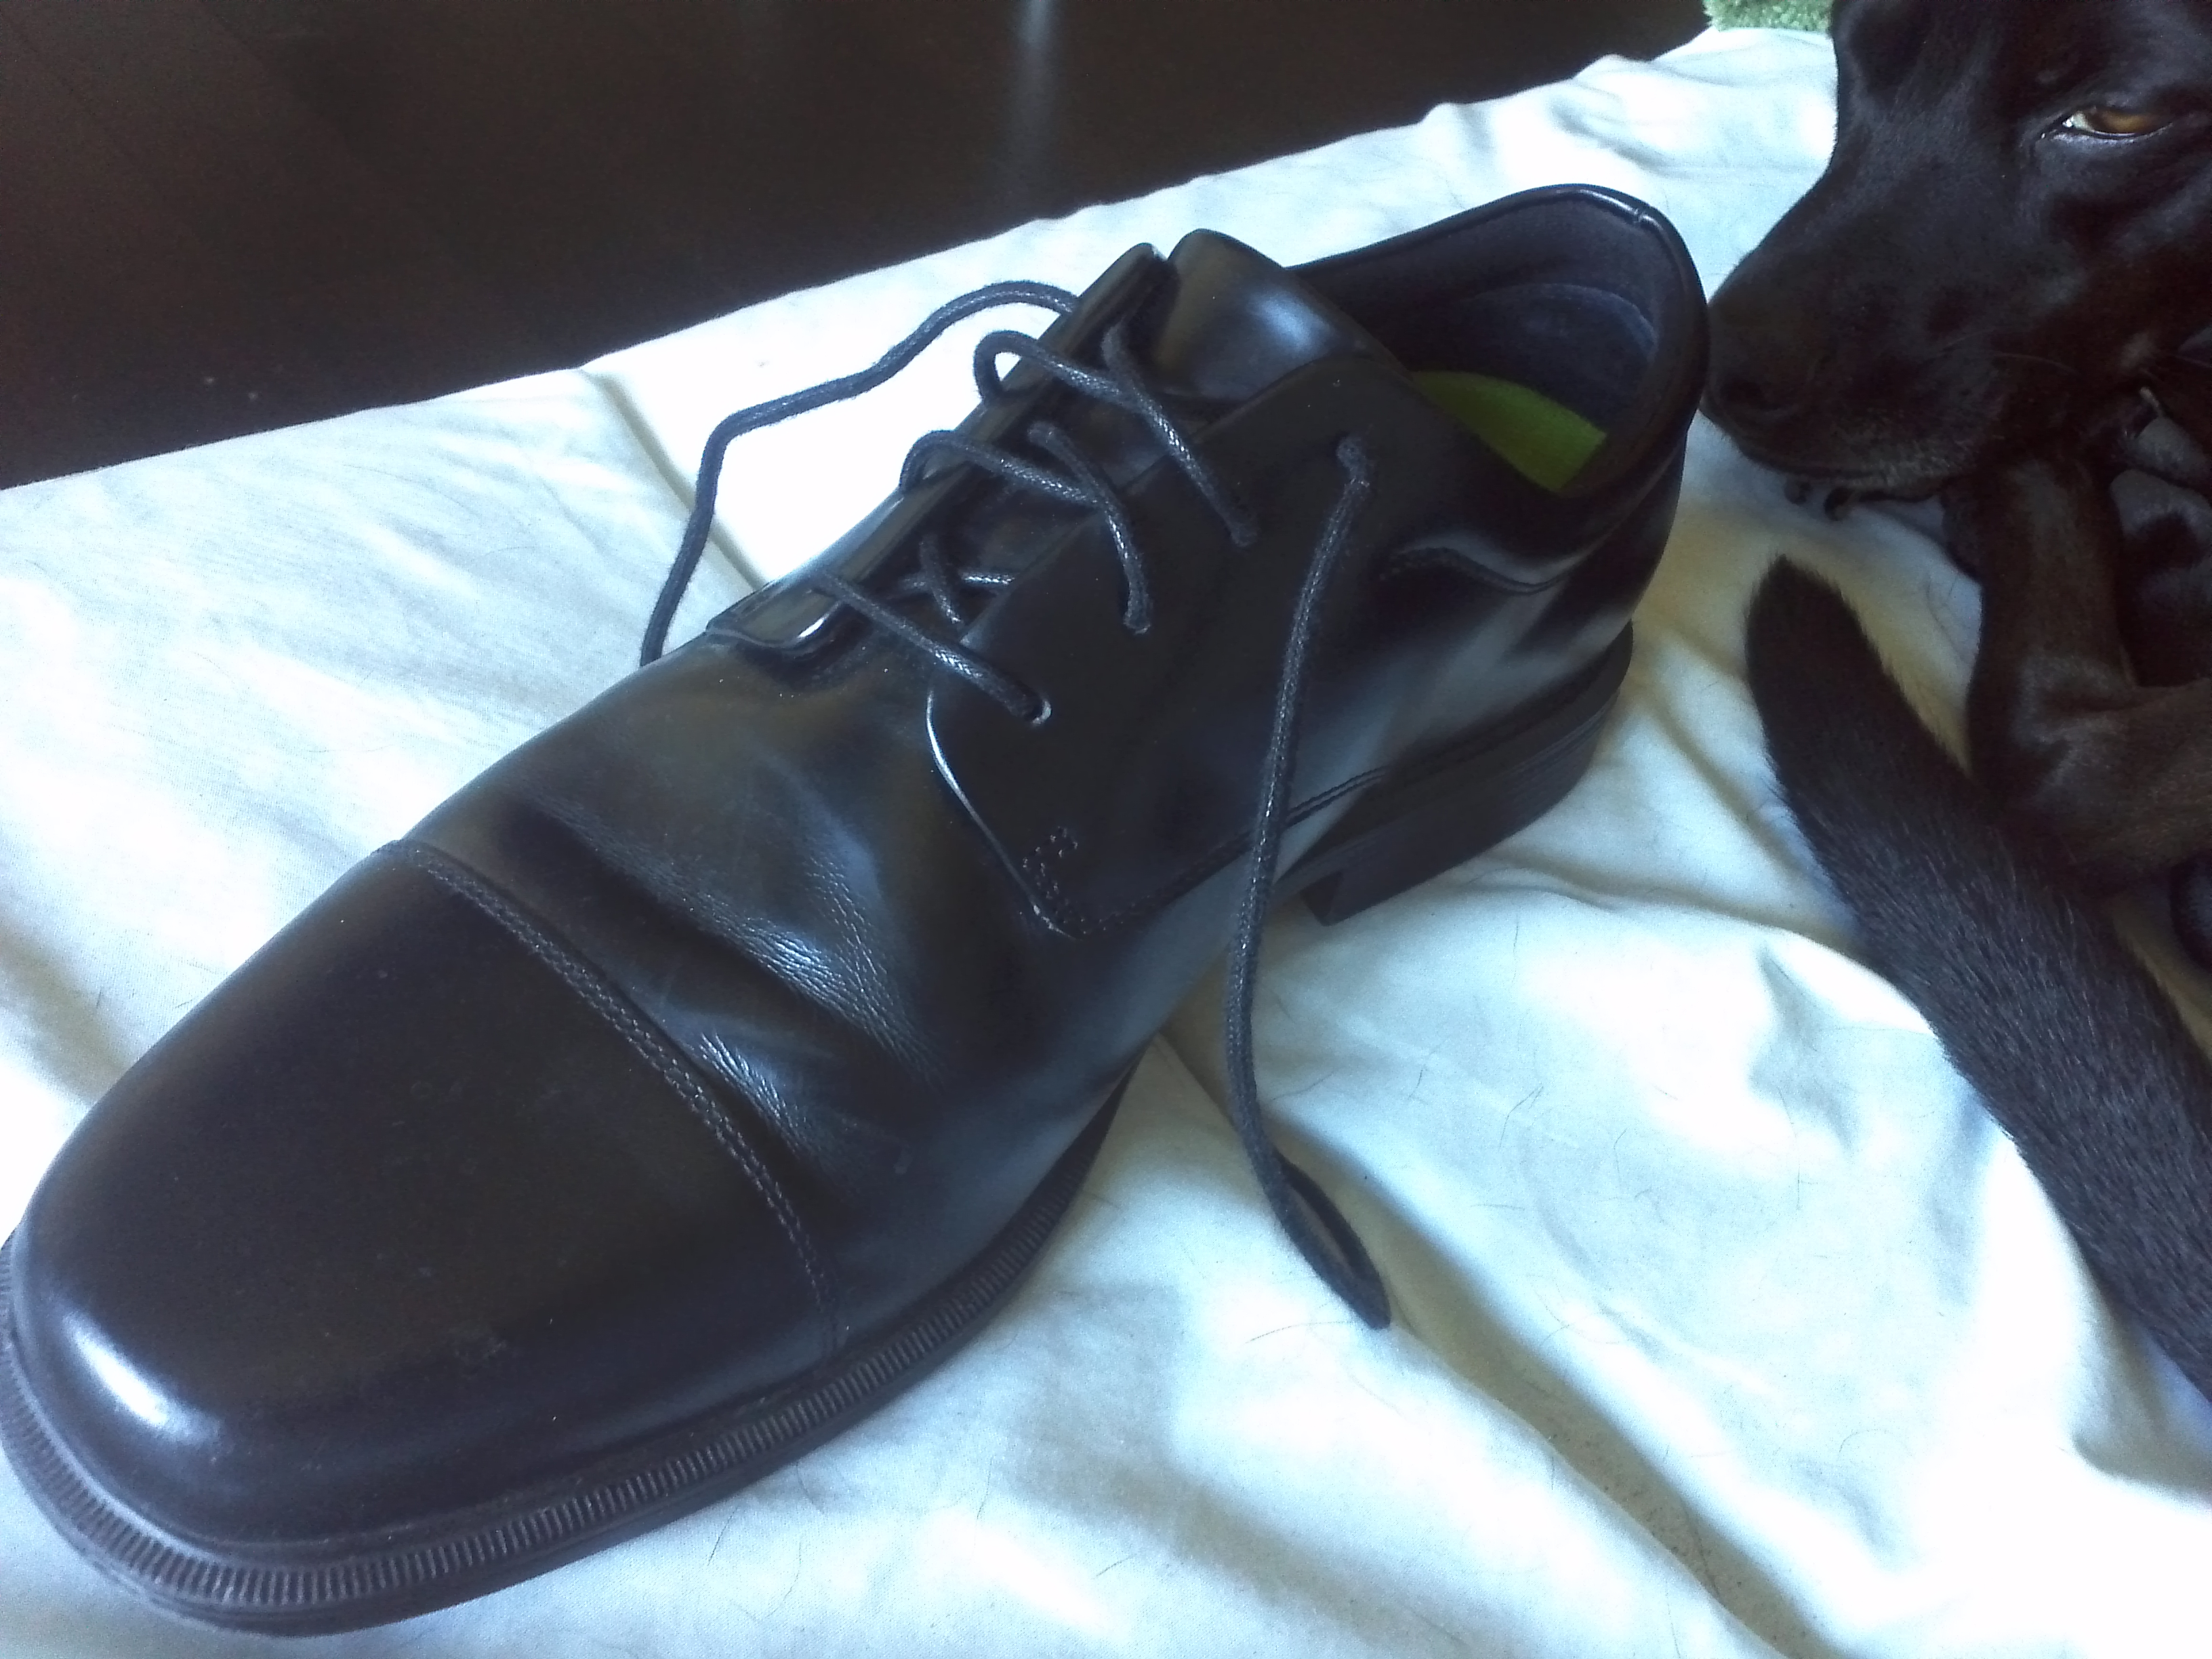 A picture of one of the new shoes. The lime green Superfeet orthotic can be seen within.